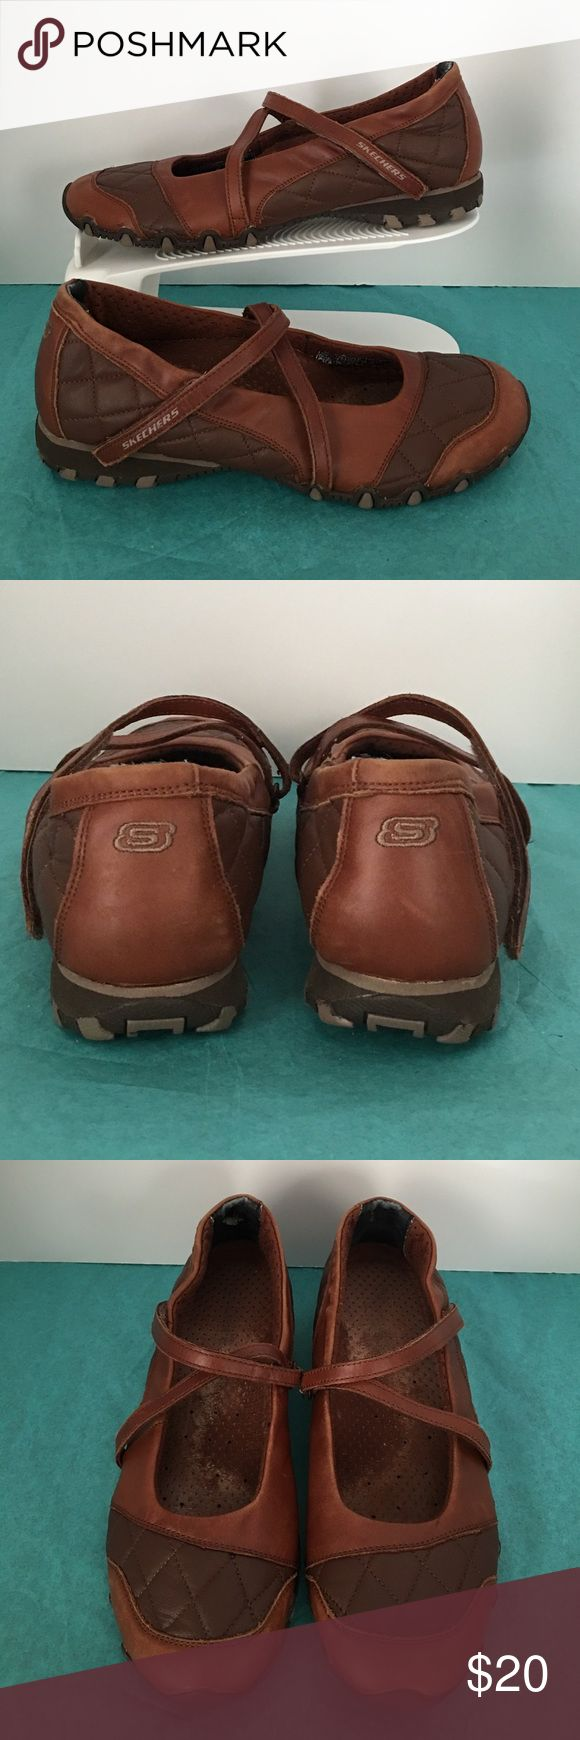 Skechers Mary Jane brown leather🇺🇸 Pre owned Skechers Mary Jane women shoes in good condition. Please zoom in on the shoes for a better look. Smoke and pet free house Skechers Shoes Flats & Loafers